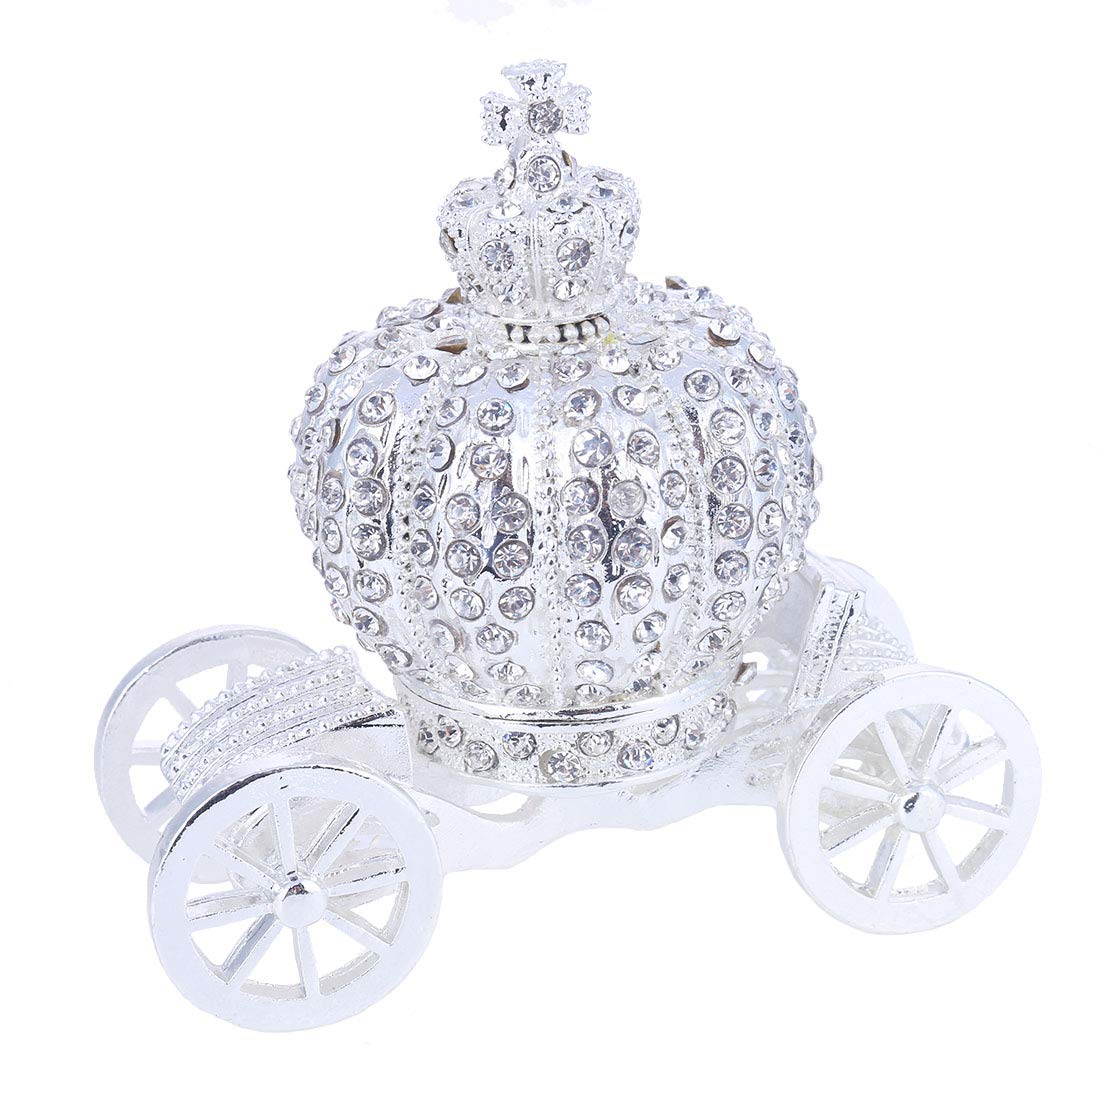 YUFENG Hand Painted Trinket Box Jewelry Holder with Elegant Crystals Collectible Figurine & Decorative Living Room Jewelry Holder (Crown Carriage